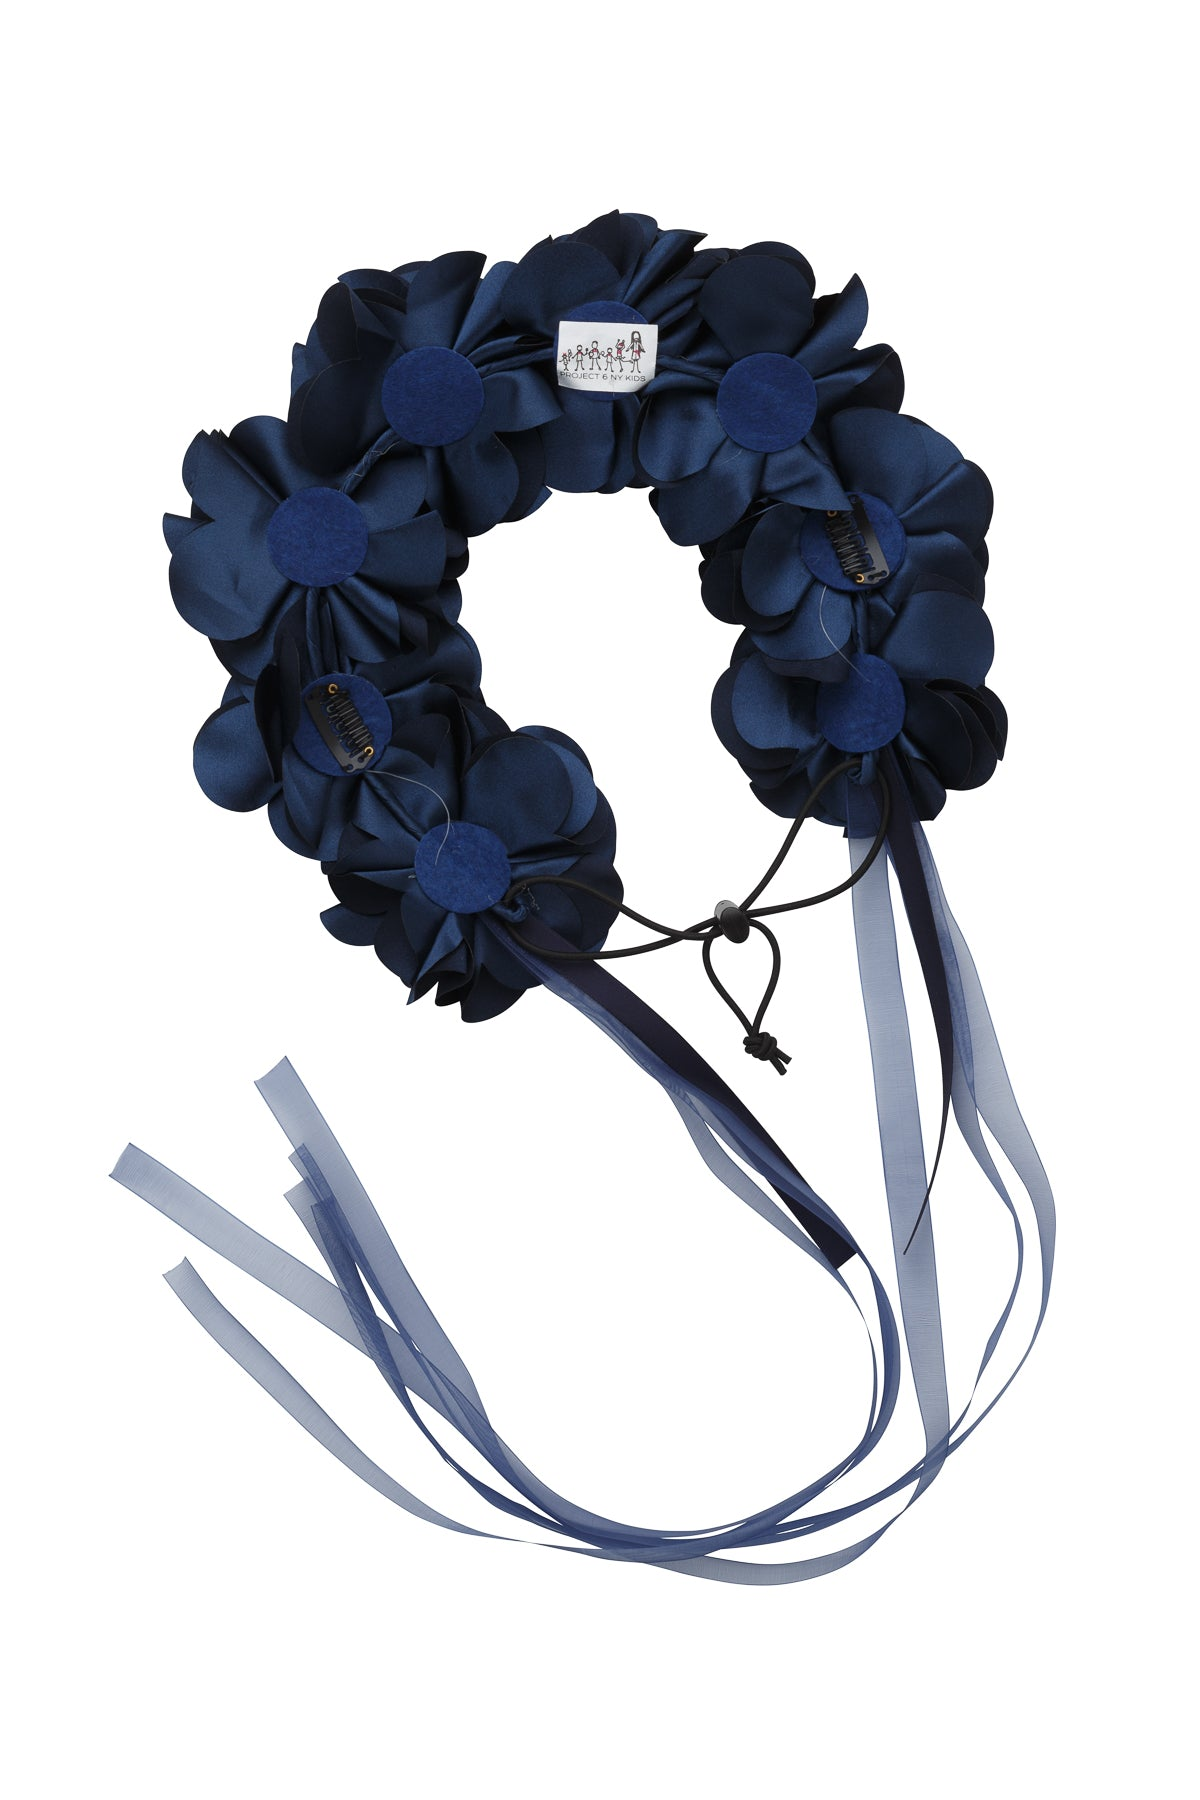 Floral Wreath Full - Navy - PROJECT 6, modest fashion